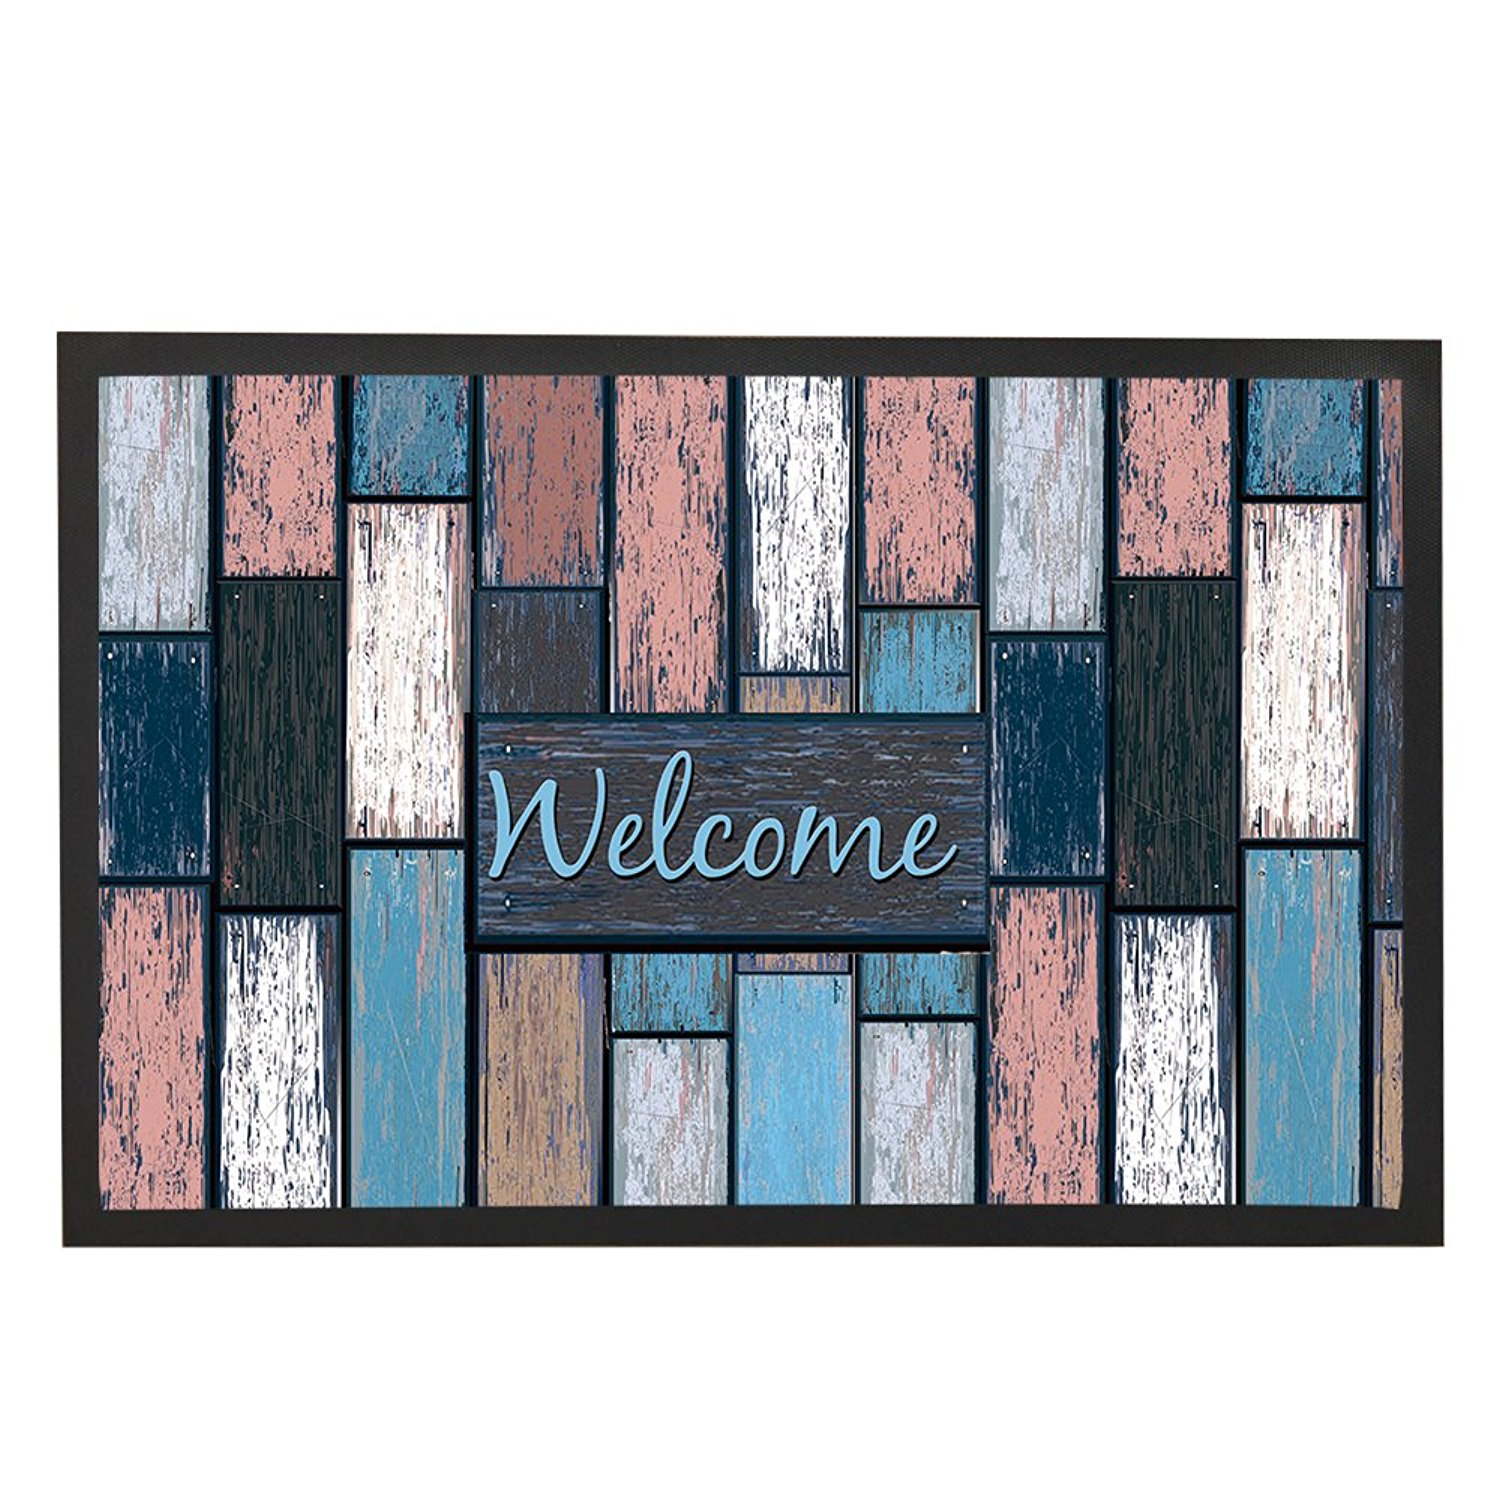 online buy wholesale rustic door mats from china rustic door mats  - modern rustic welcome door mats wood home floor mat indoor outdoor bath mathouse door